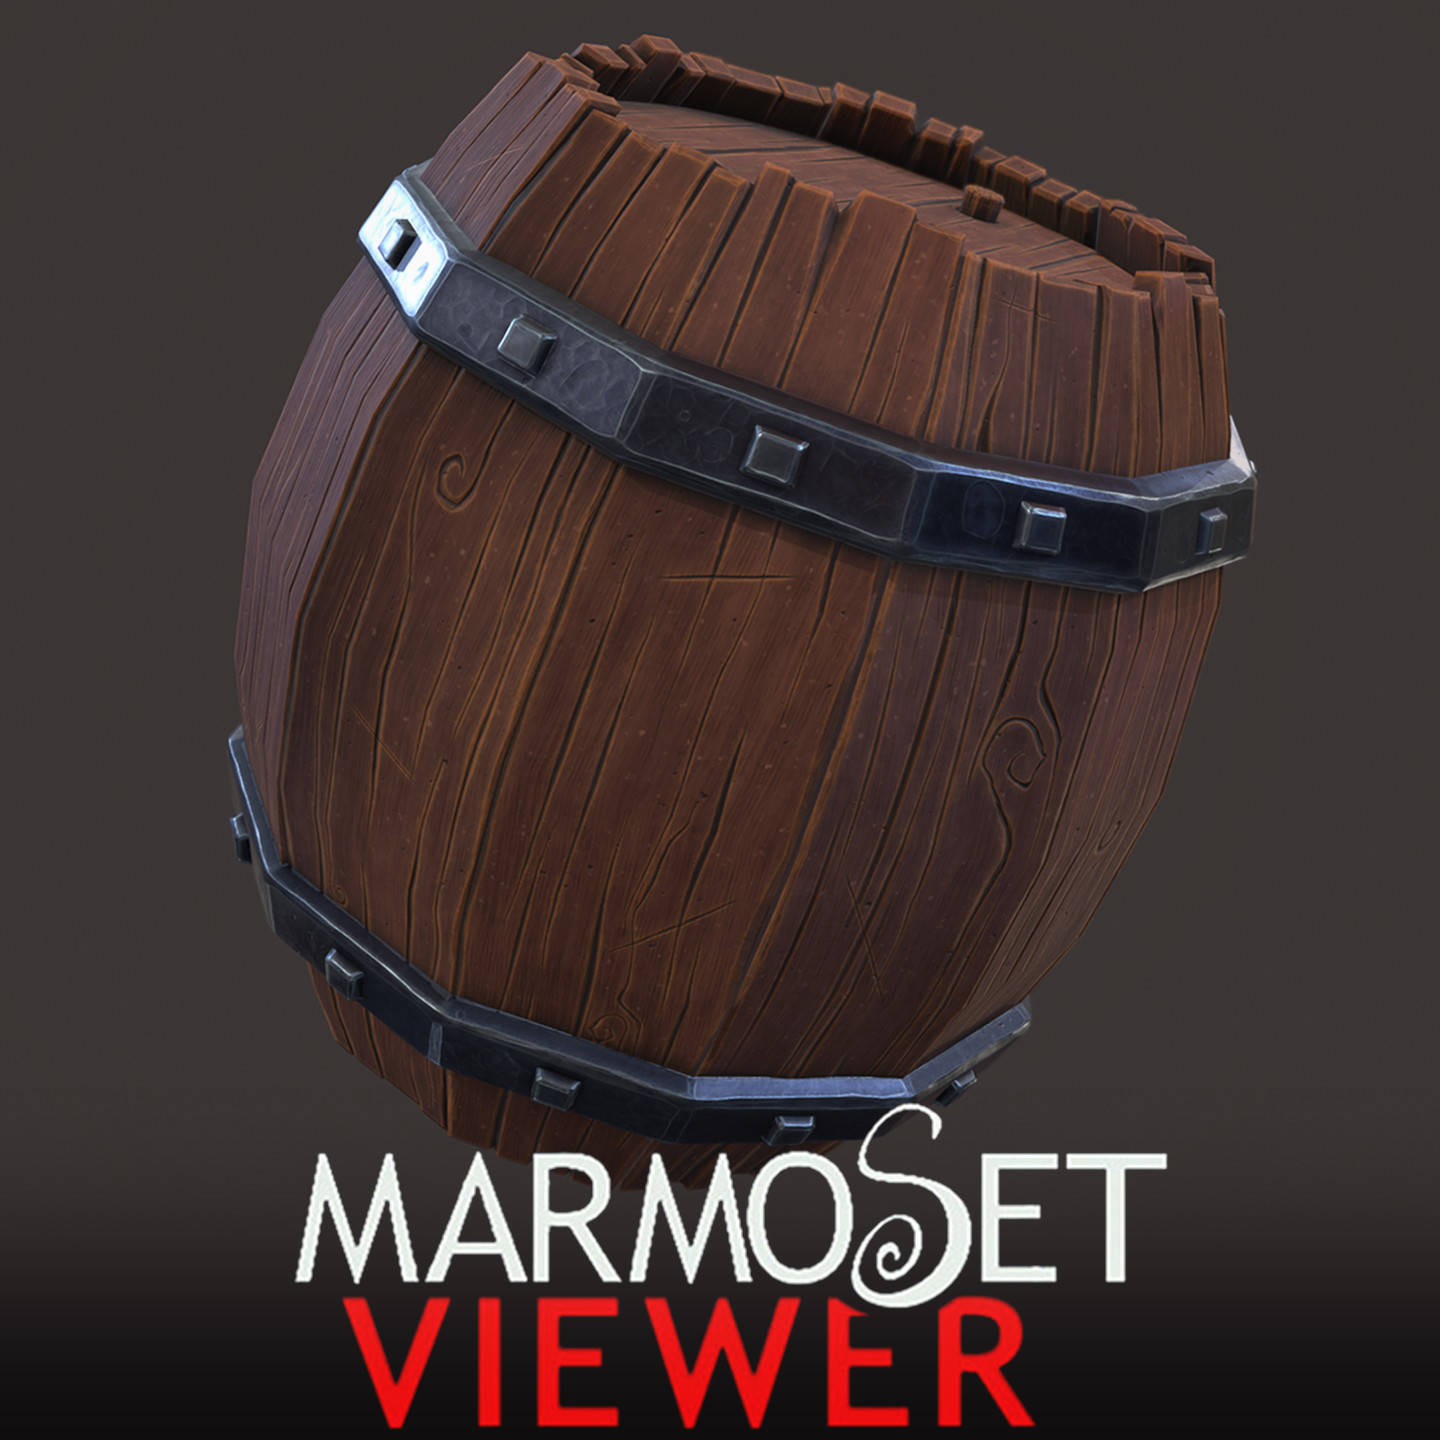 Stylised Wooden Barrel